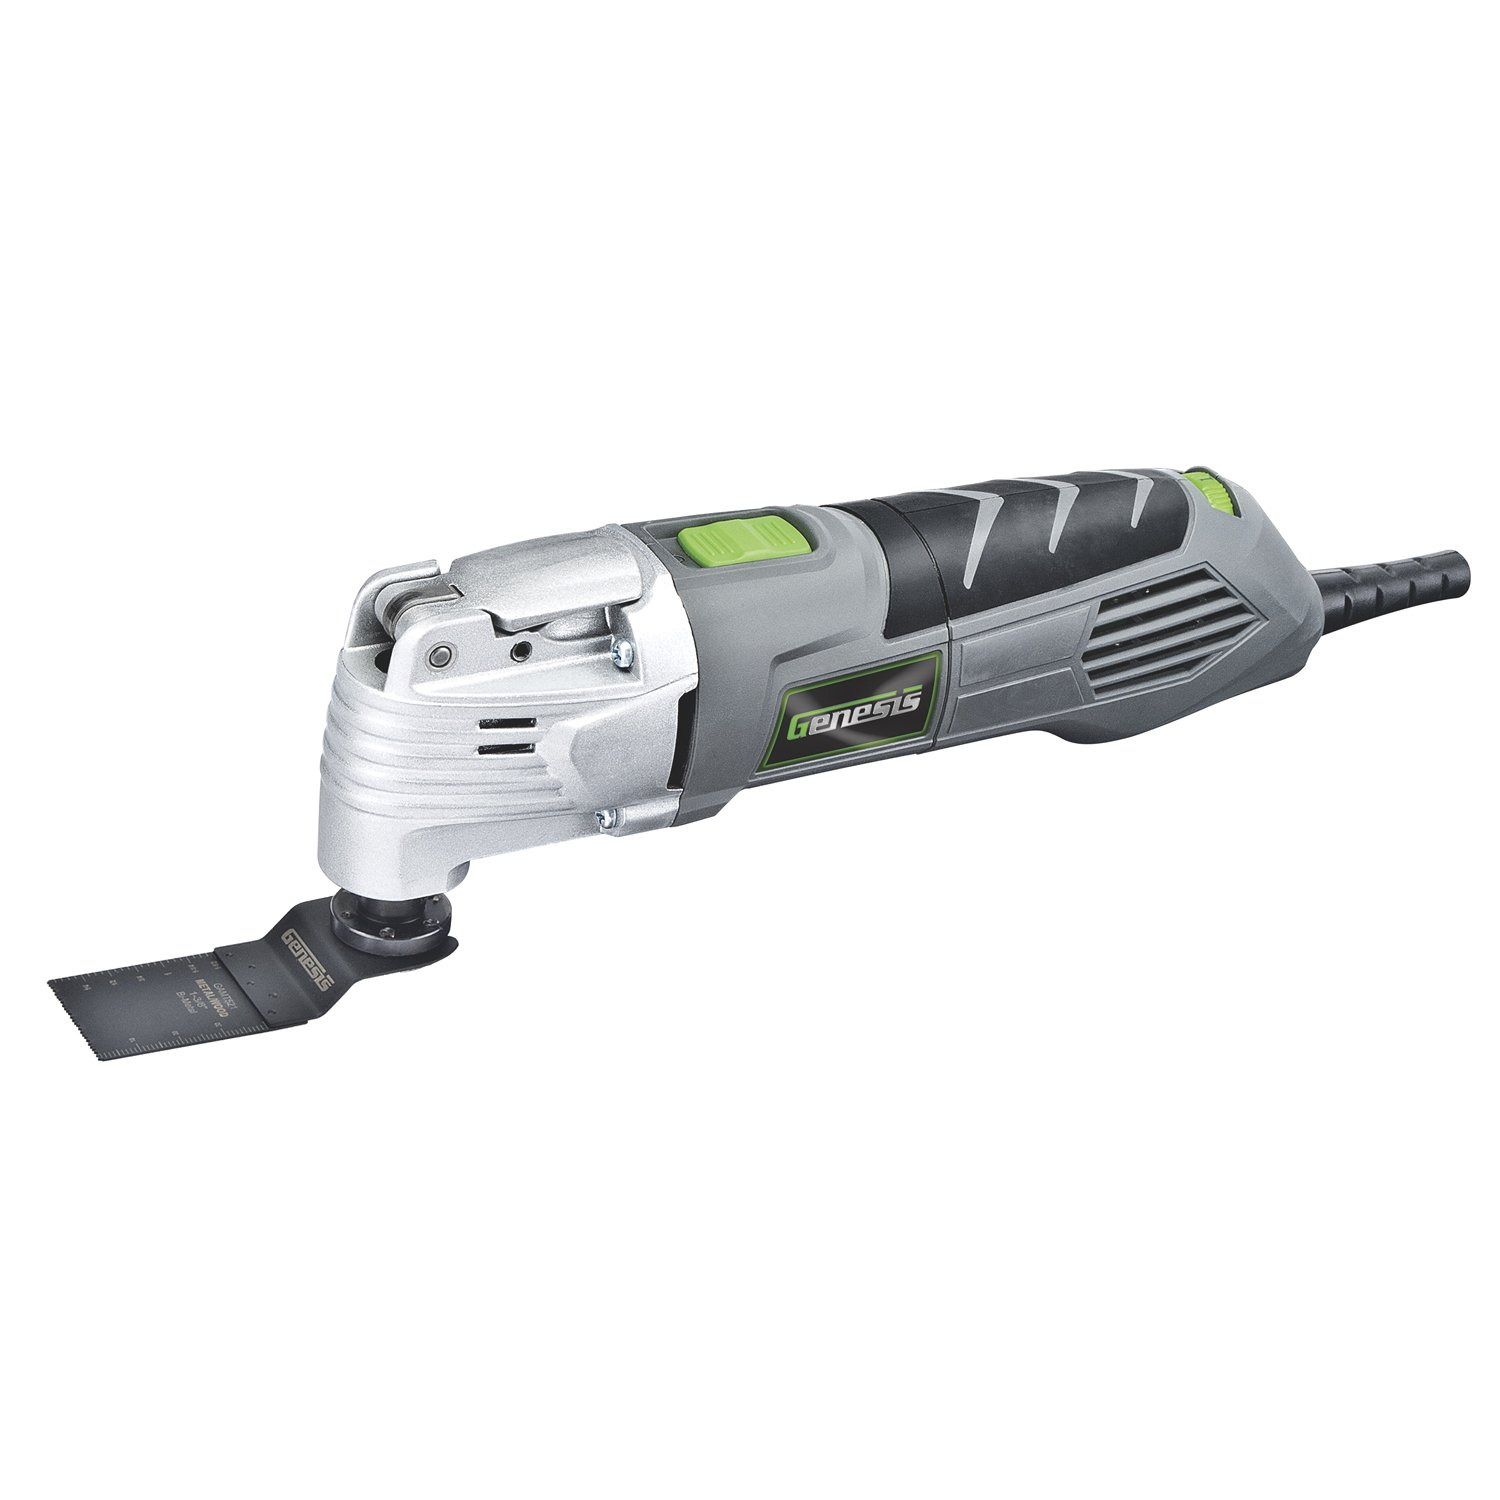 Genesis GMT25T 2.5-Amp Variable Speed Multi-Purpose Oscillating Tool